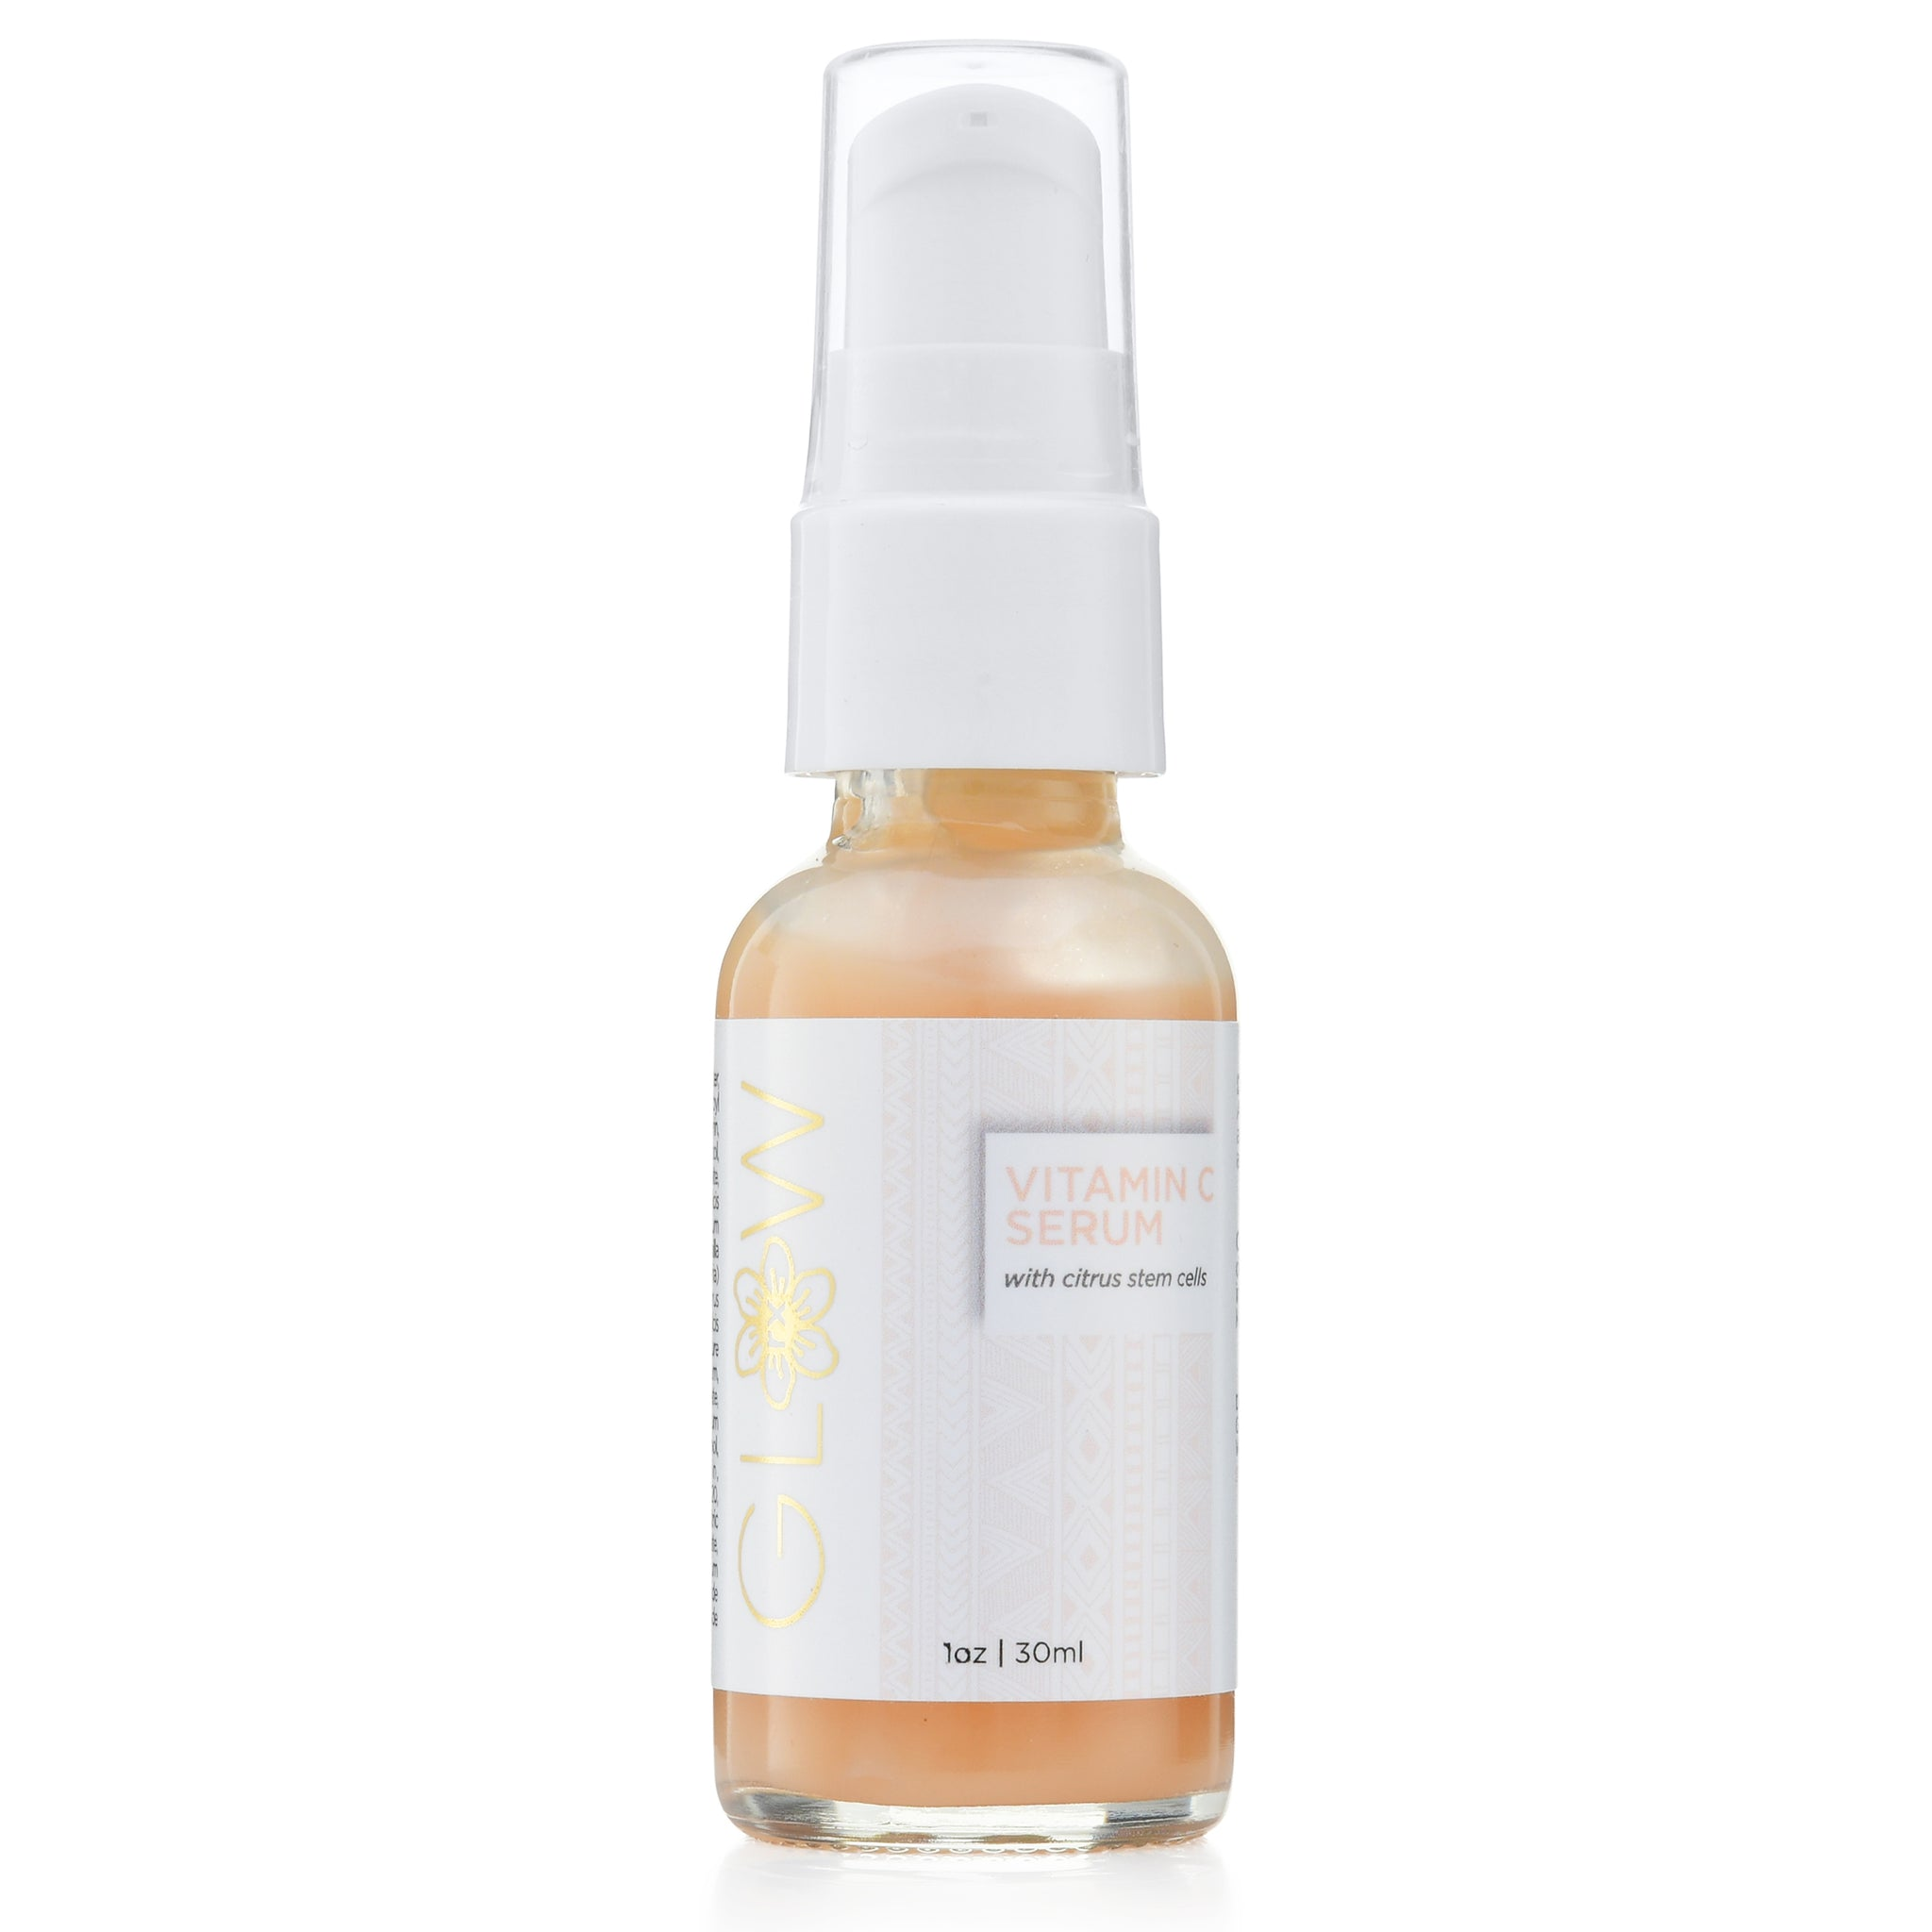 Vitamin C Serum w/ Citris Stem Cells - 1oz/30mL